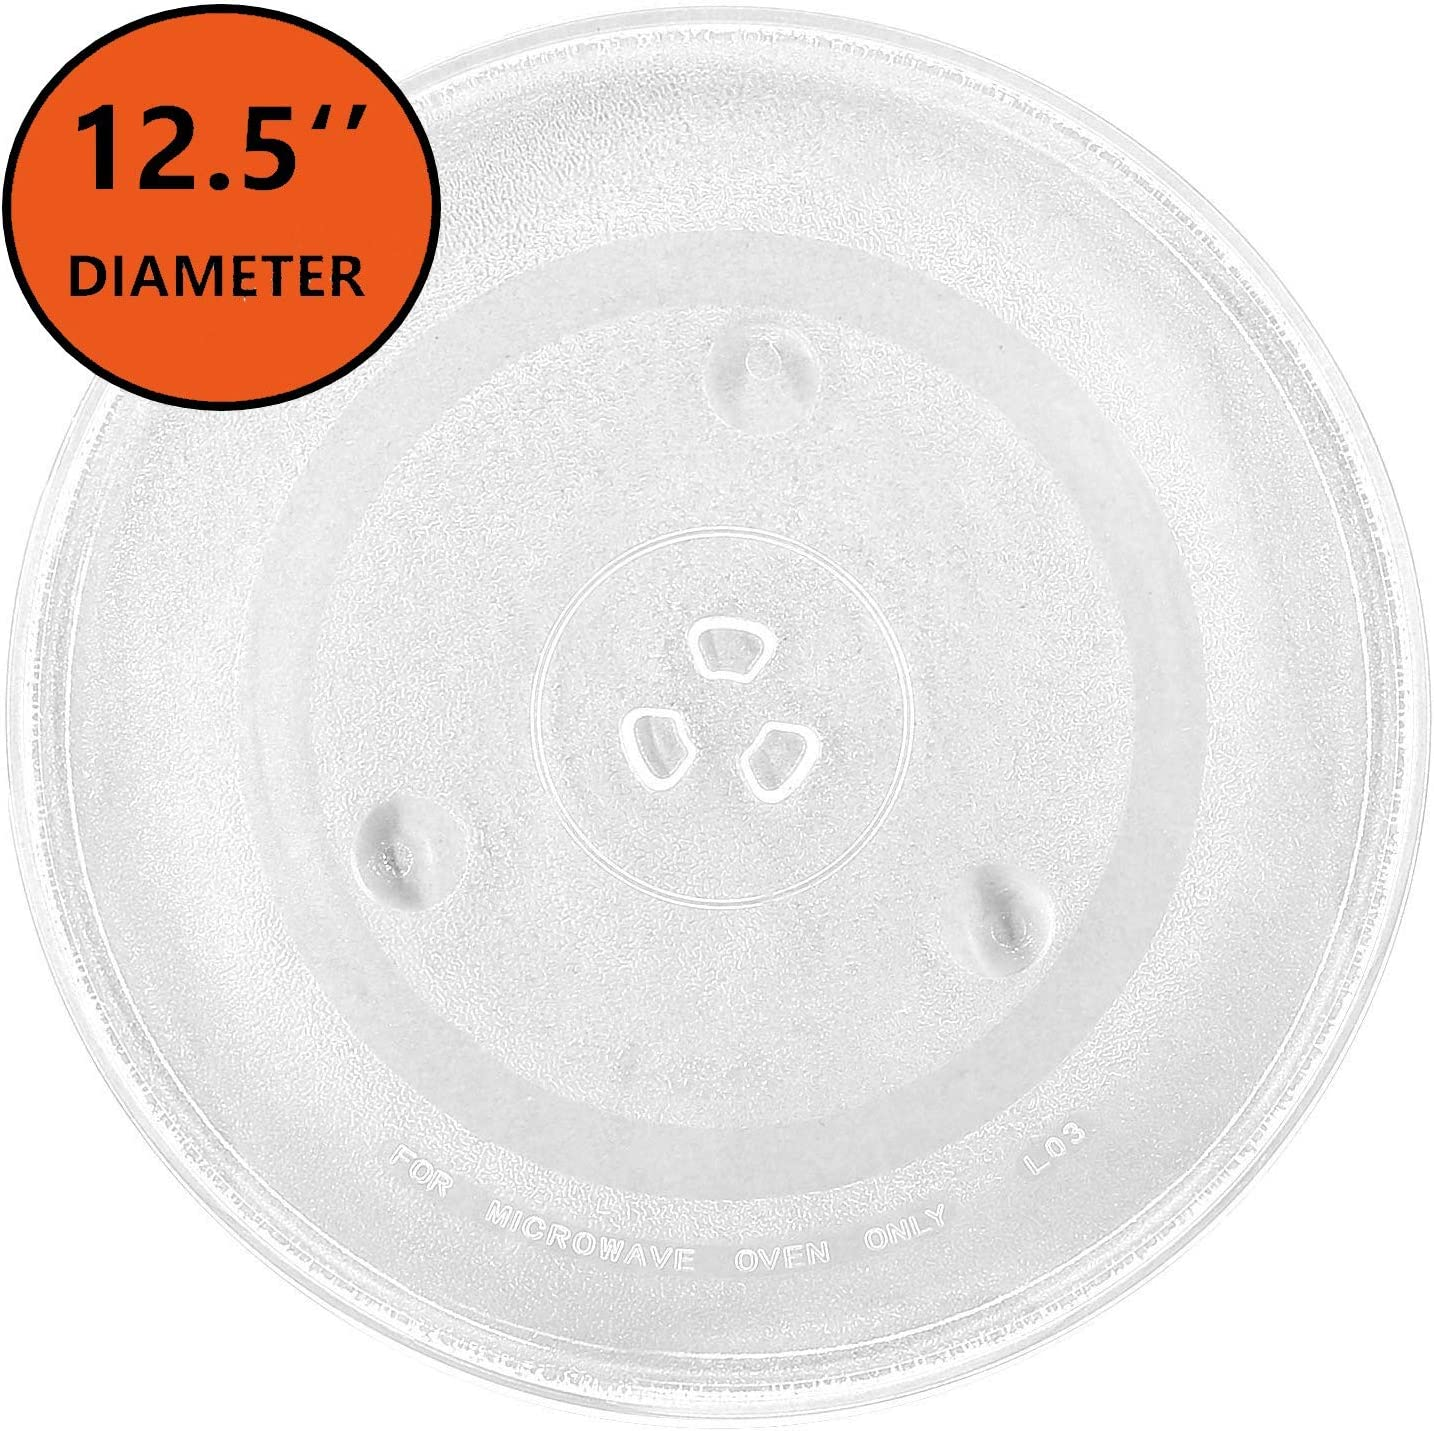 KONIBN Microwave Plate Replacement 12.5inch Microwave Glass Plate/Microwave Glass Turntable Plate Replacement, Compatible with GE and Samsung